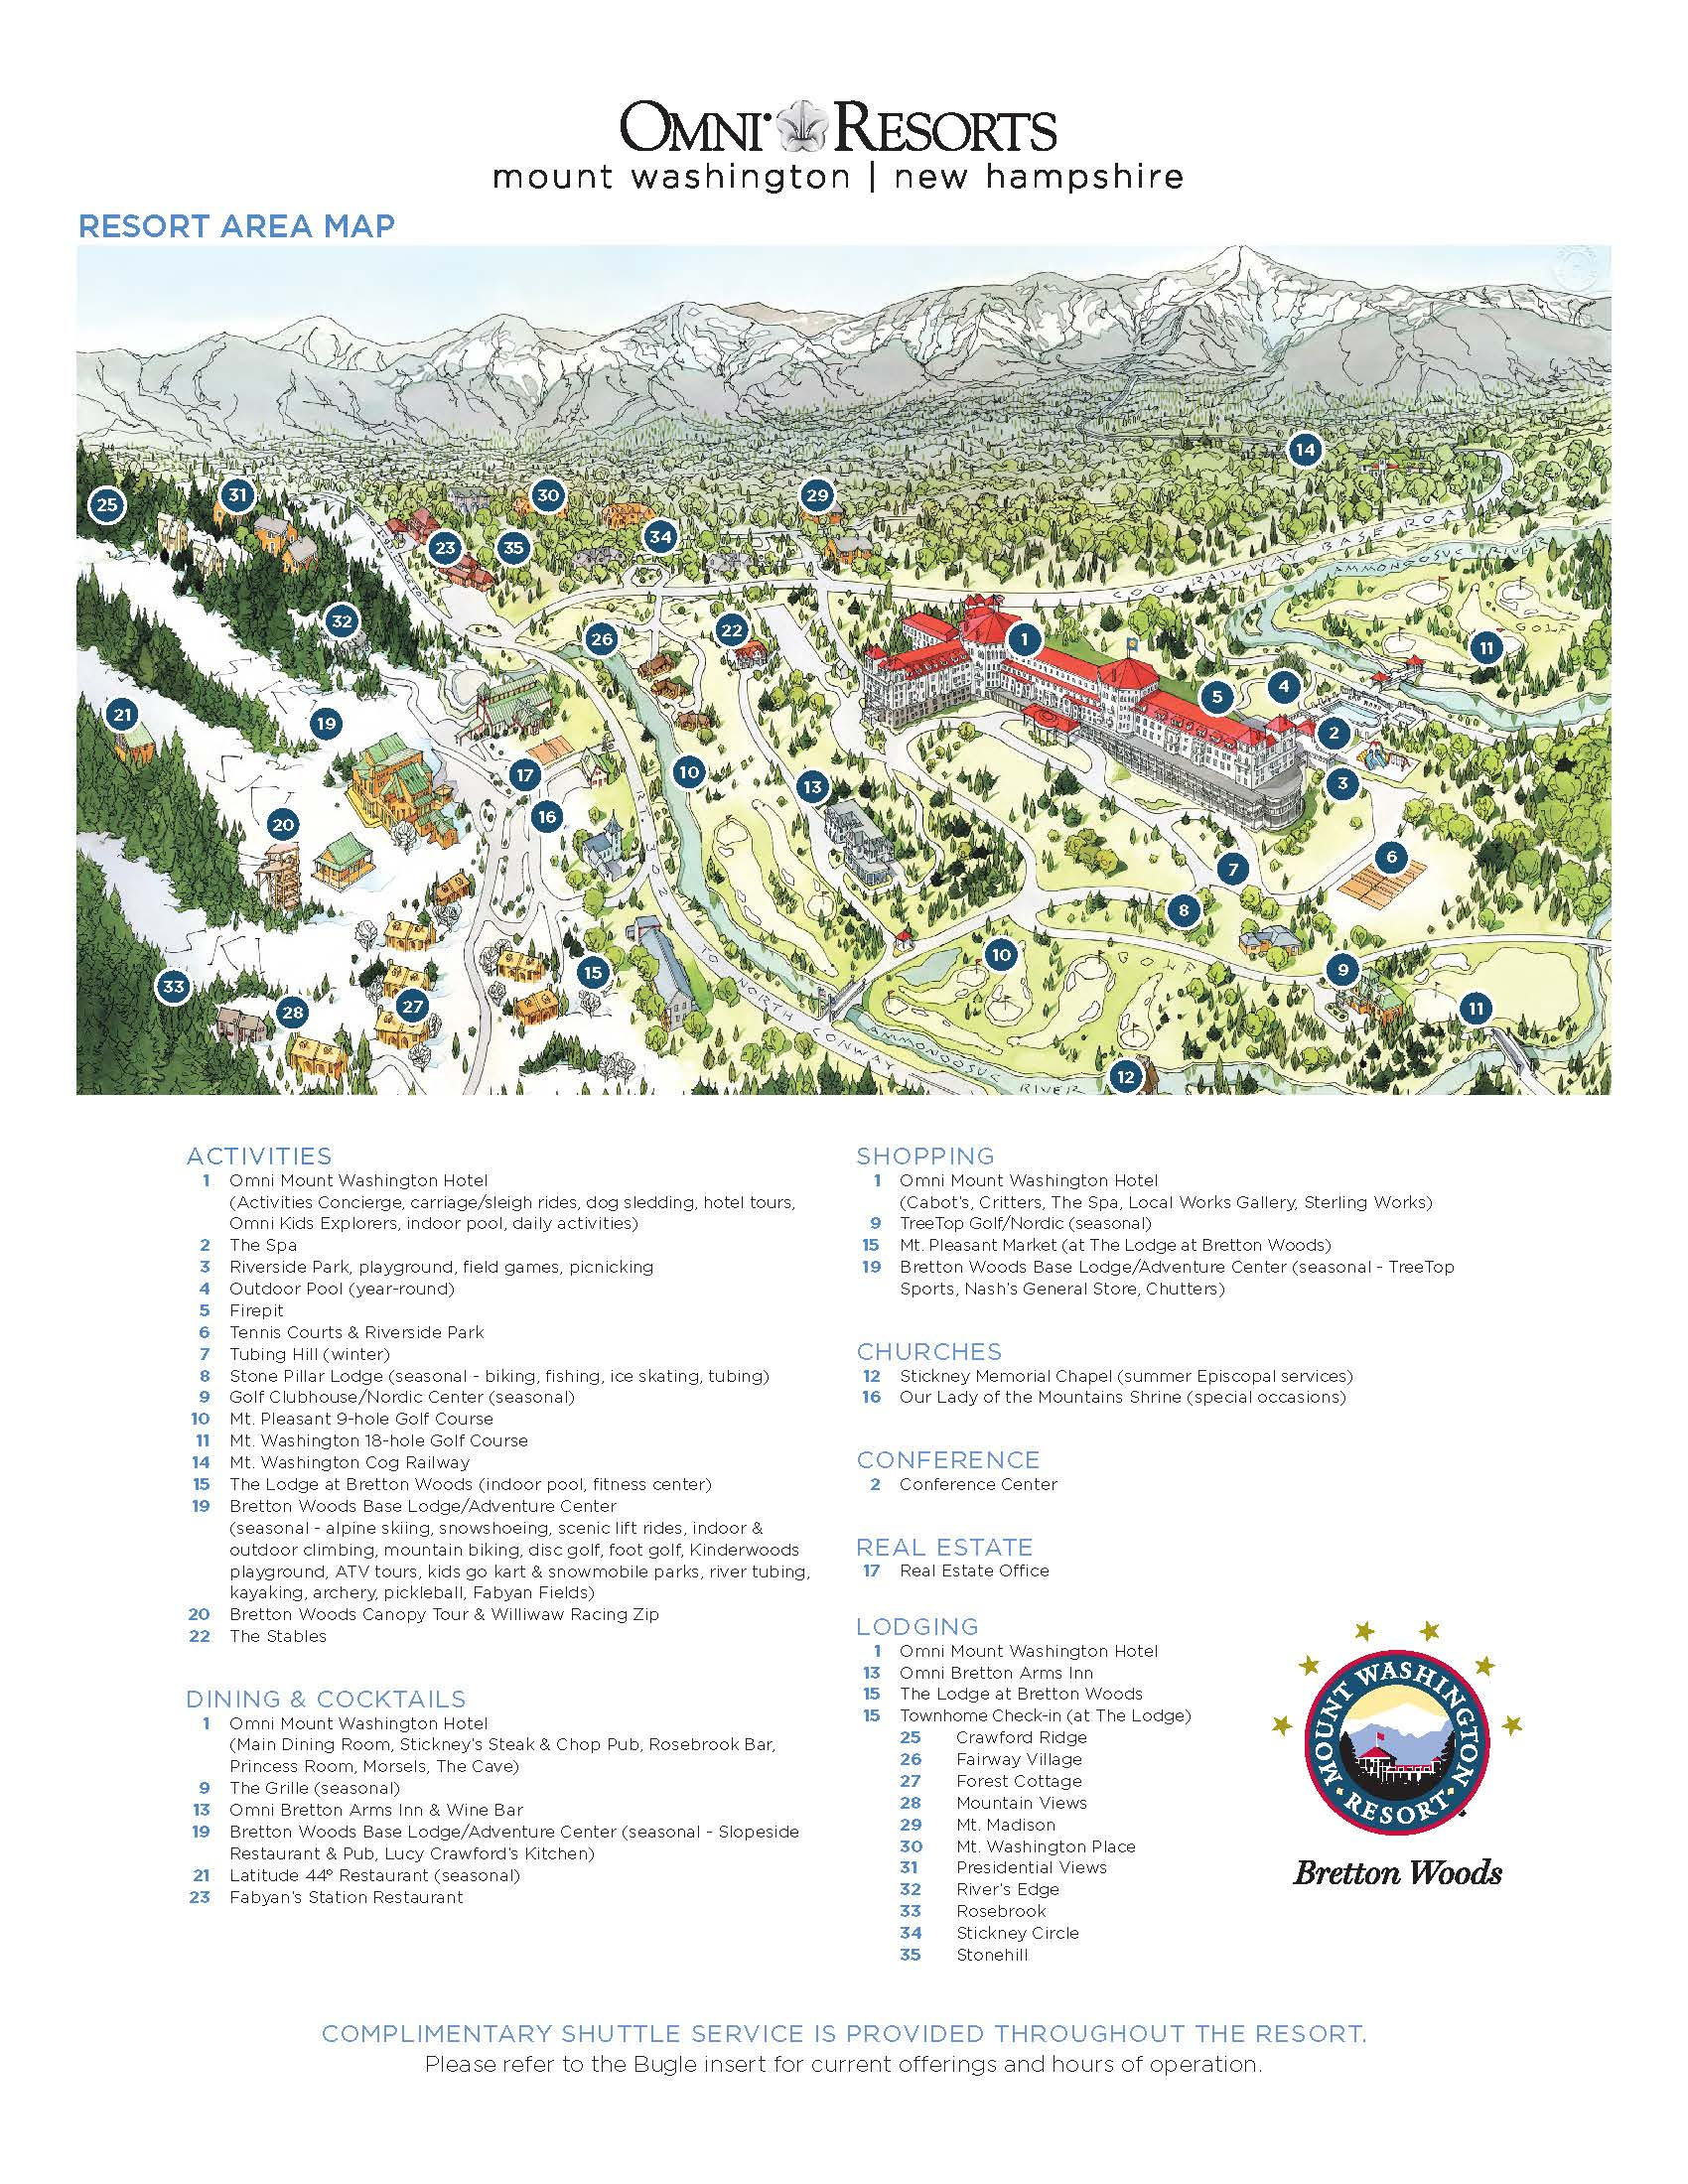 Omni Mount Washington Resort map